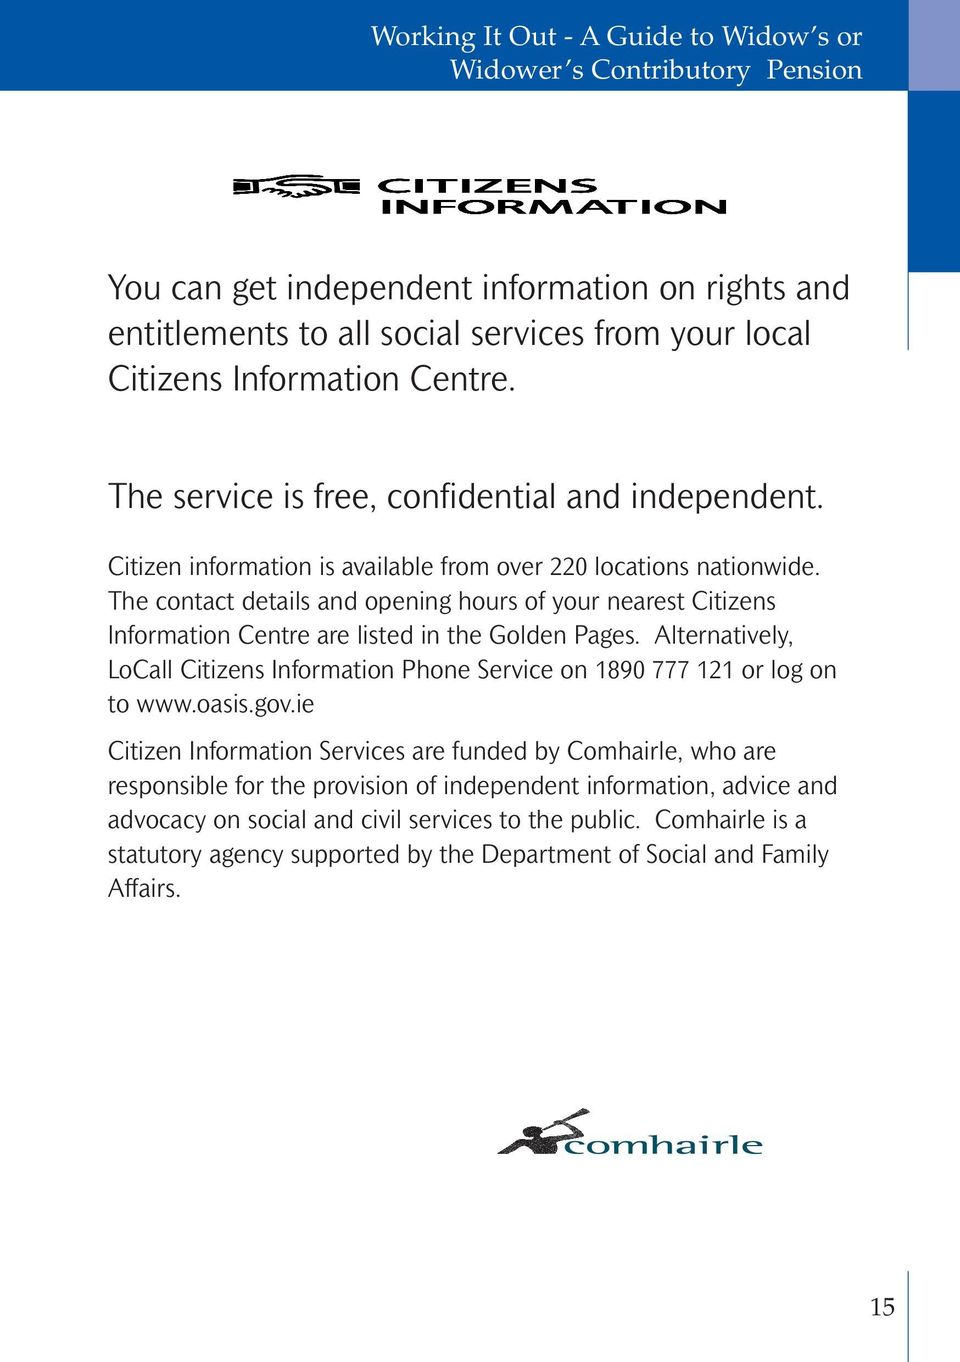 The contact details and opening hours of your nearest Citizens Information Centre are listed in the Golden Pages.